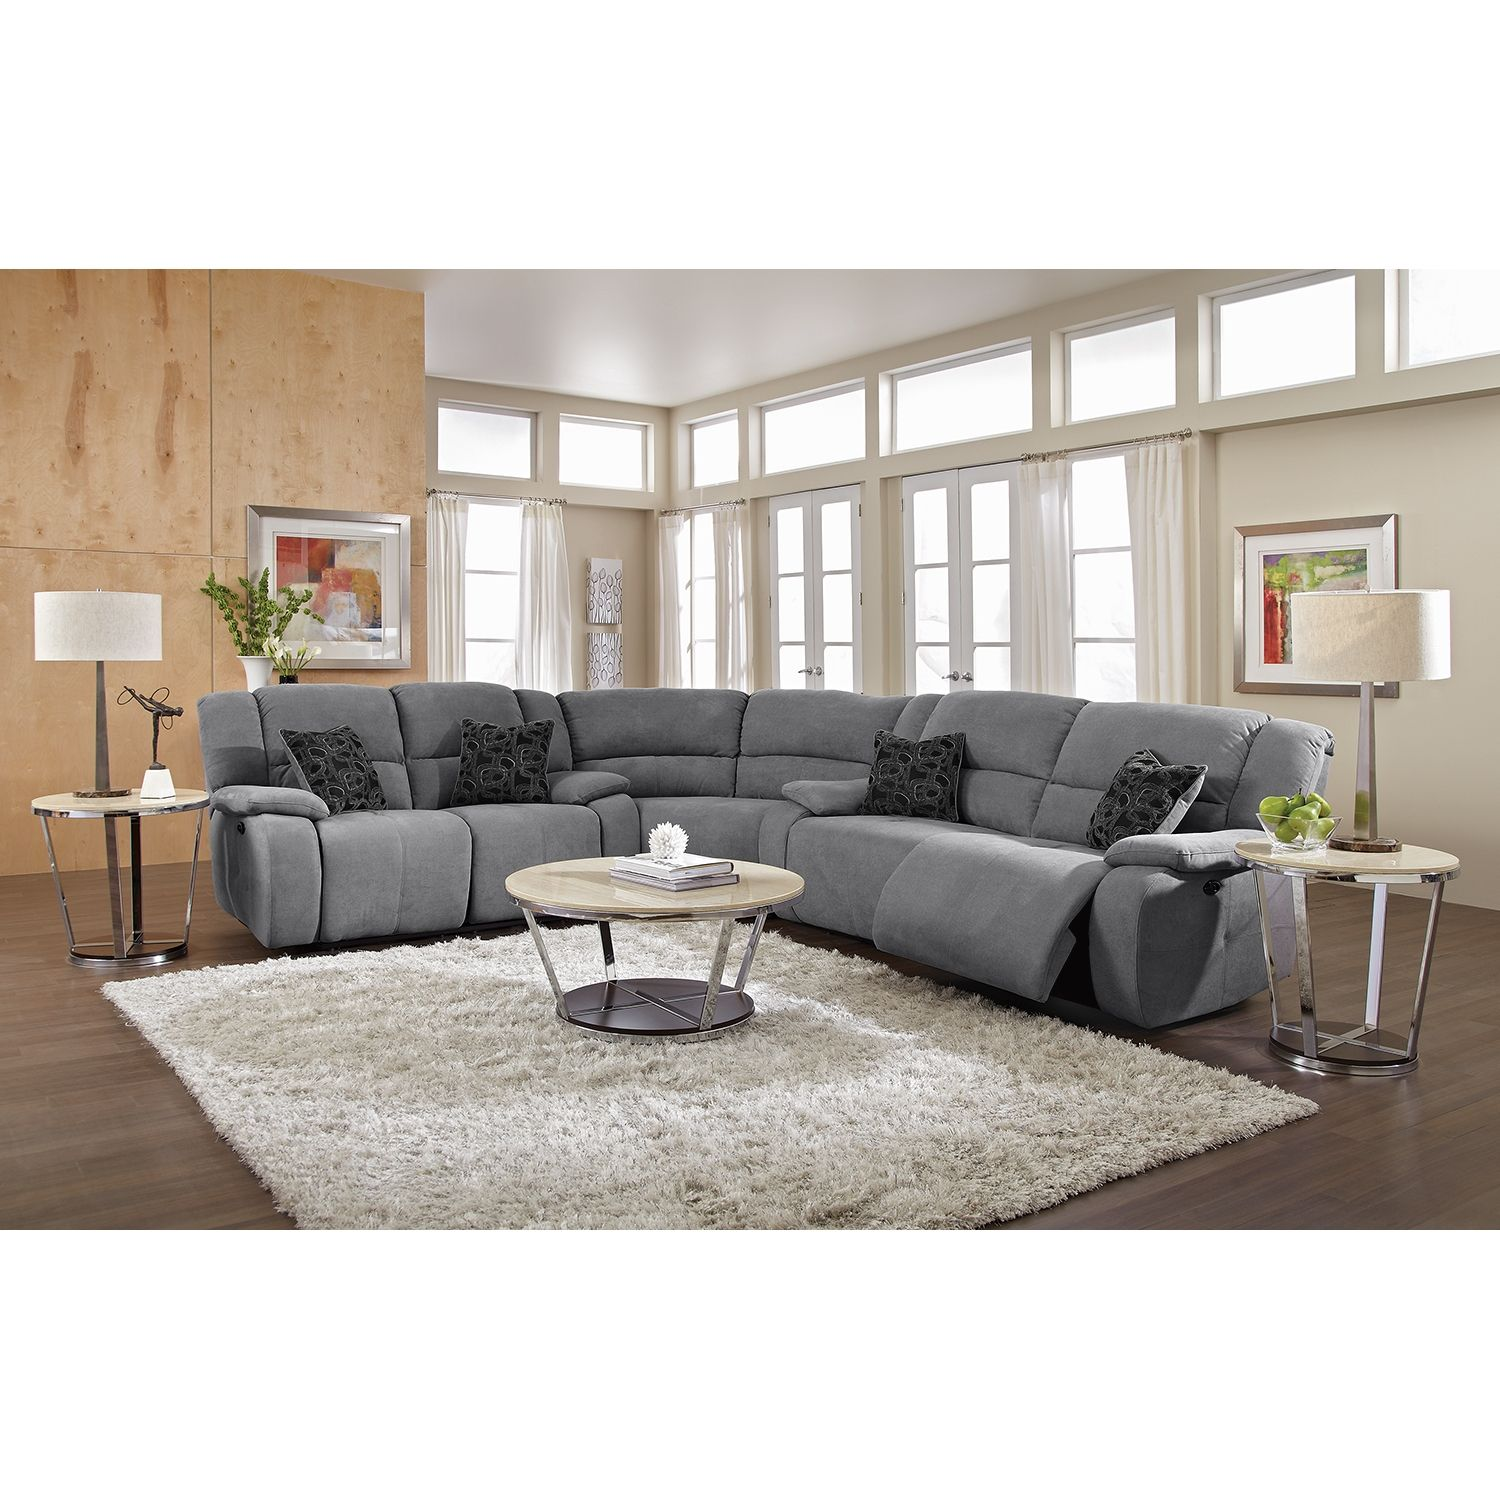 Love this couch gray is awesome future living room for Gray living room furniture ideas